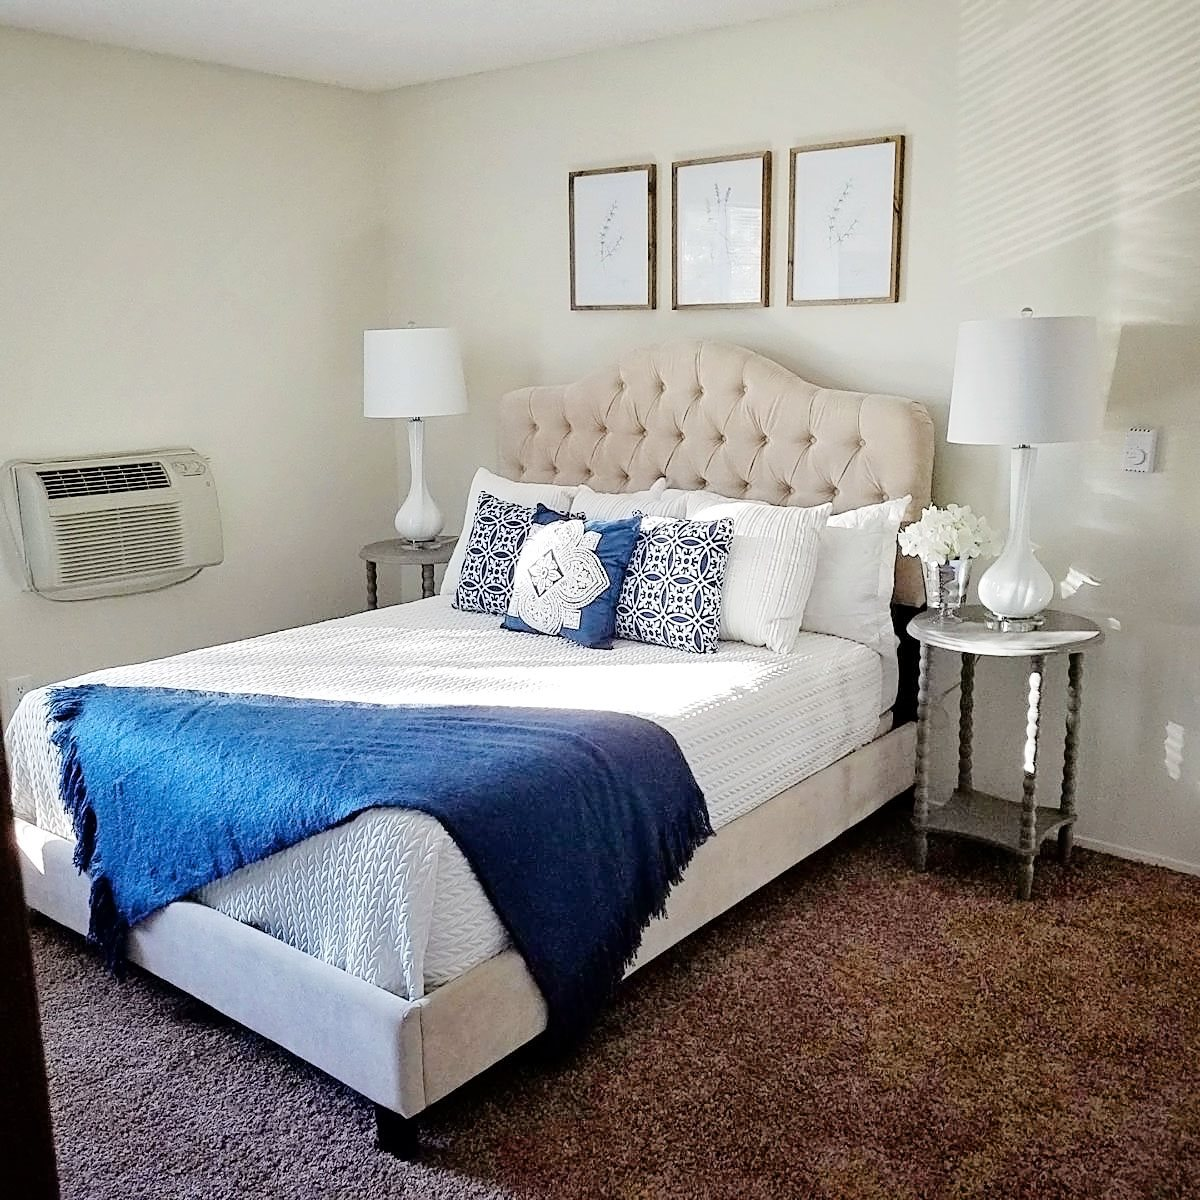 Apartments In Richland Wa: Photos And Video Of Cedar North In Richland, WA